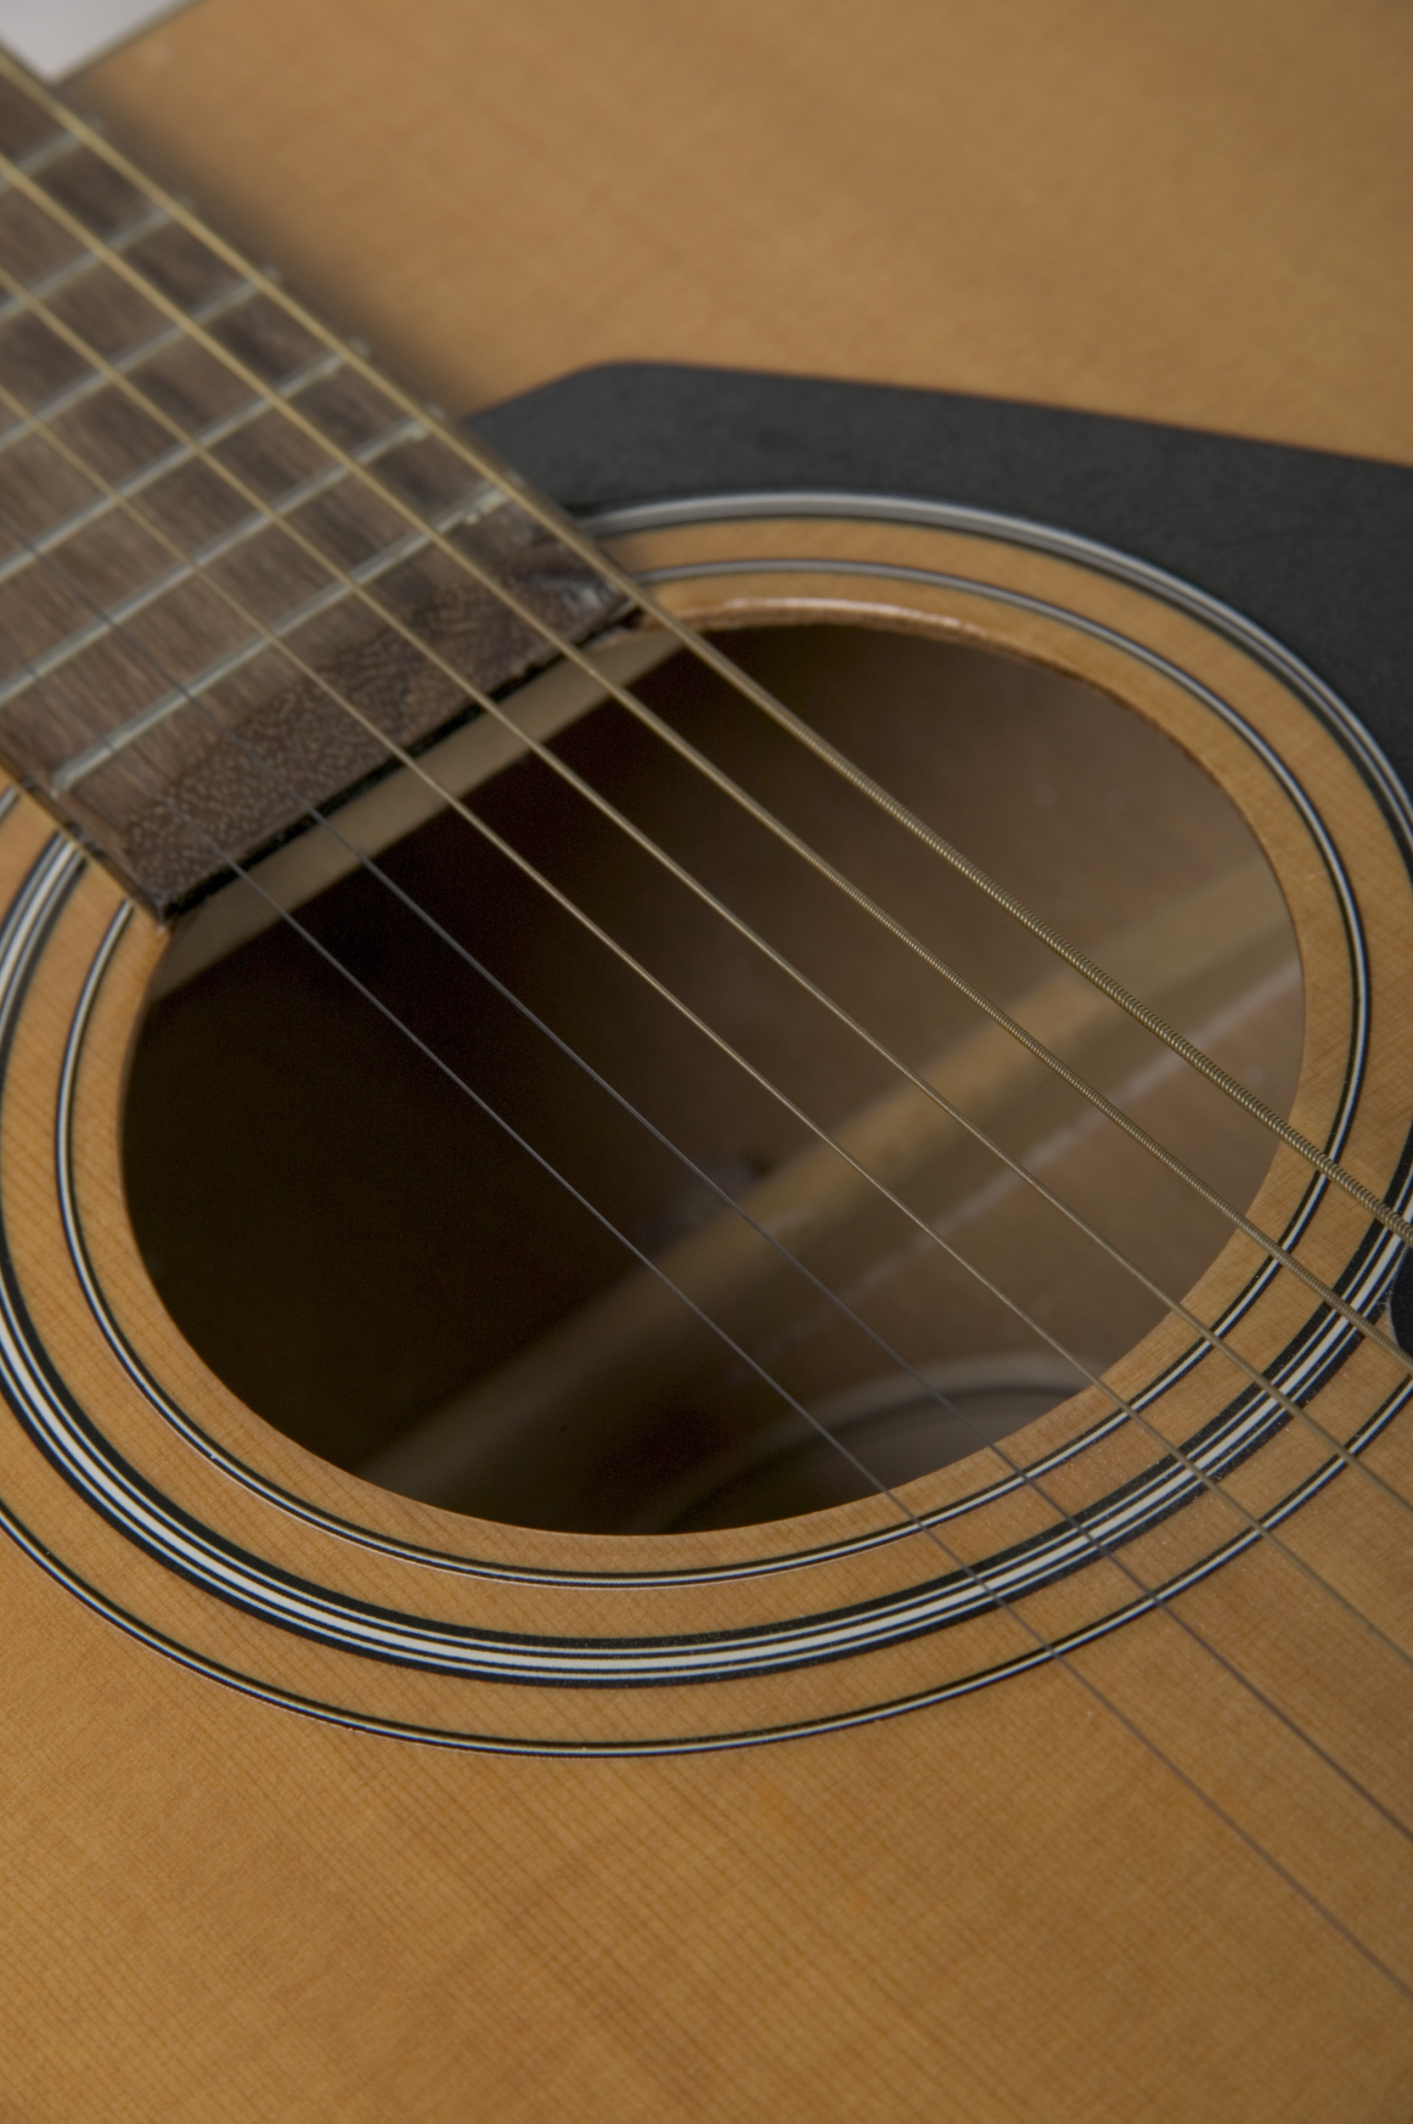 How to Make Your Guitar Sound Like an Acoustic in GarageBand